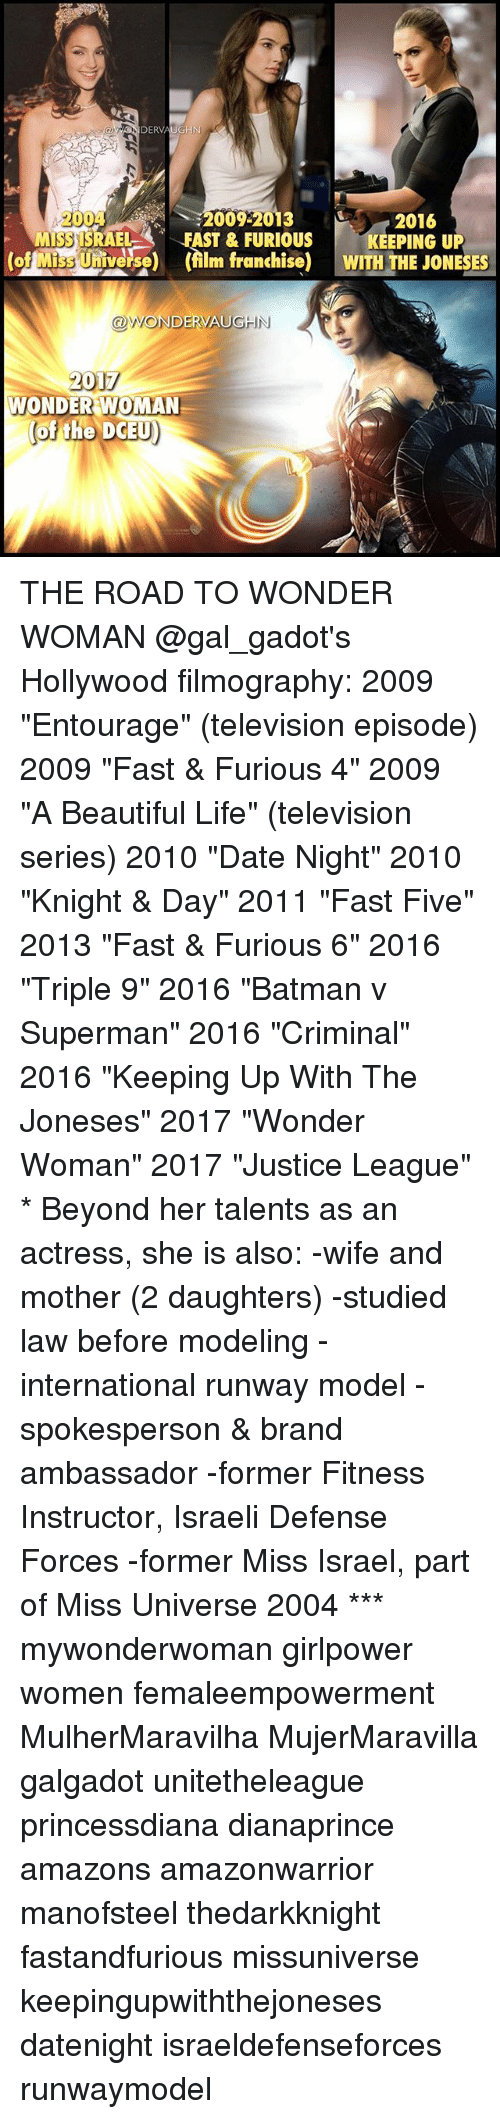 """Missuniverse: DERVAUGHN  A2004  2016  MS3 ISRAEL A FAST & FURIOUS  KEEPING UP  Miss U  (film franchise) WITH THE JONESES  ODWONDERVAUGHN  2017  WONDER WOMAN  of the DCEU) THE ROAD TO WONDER WOMAN @gal_gadot's Hollywood filmography: 2009 """"Entourage"""" (television episode) 2009 """"Fast & Furious 4"""" 2009 """"A Beautiful Life"""" (television series) 2010 """"Date Night"""" 2010 """"Knight & Day"""" 2011 """"Fast Five"""" 2013 """"Fast & Furious 6"""" 2016 """"Triple 9"""" 2016 """"Batman v Superman"""" 2016 """"Criminal"""" 2016 """"Keeping Up With The Joneses"""" 2017 """"Wonder Woman"""" 2017 """"Justice League"""" * Beyond her talents as an actress, she is also: -wife and mother (2 daughters) -studied law before modeling -international runway model -spokesperson & brand ambassador -former Fitness Instructor, Israeli Defense Forces -former Miss Israel, part of Miss Universe 2004 *** mywonderwoman girlpower women femaleempowerment MulherMaravilha MujerMaravilla galgadot unitetheleague princessdiana dianaprince amazons amazonwarrior manofsteel thedarkknight fastandfurious missuniverse keepingupwiththejoneses datenight israeldefenseforces runwaymodel"""